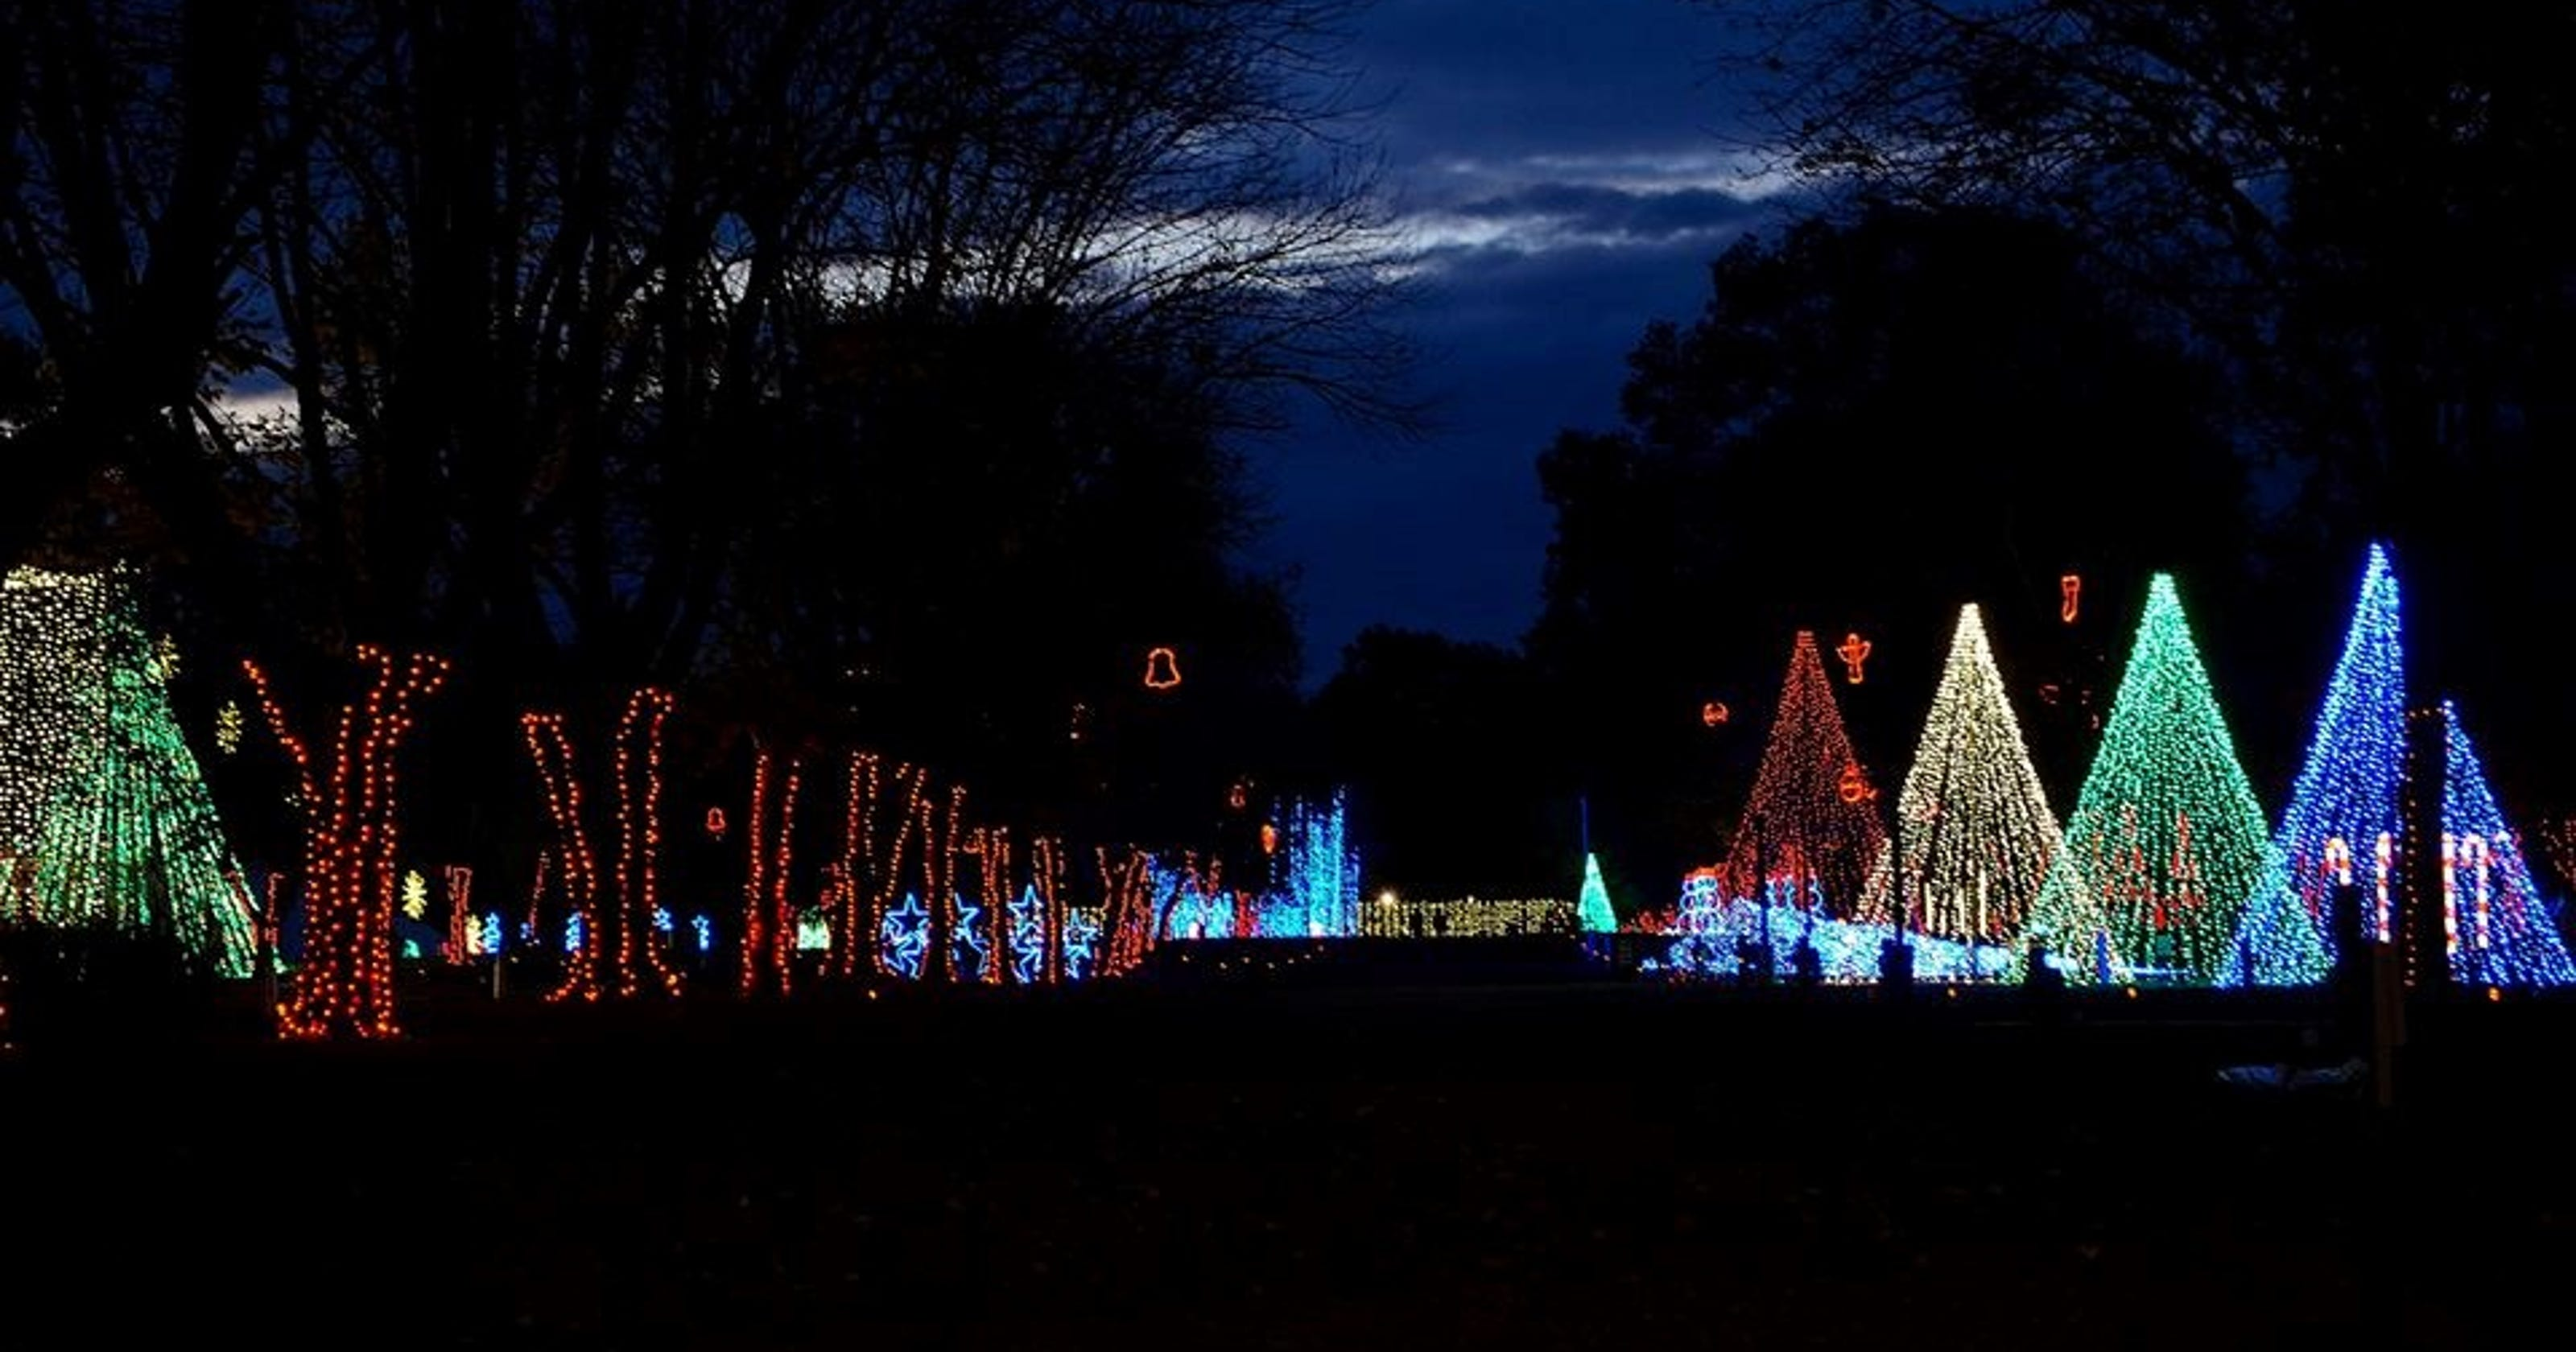 dancing lights of christmas show to move from nashvilles jellystone park to wilson county - Jellystone Park Nashville Christmas Lights